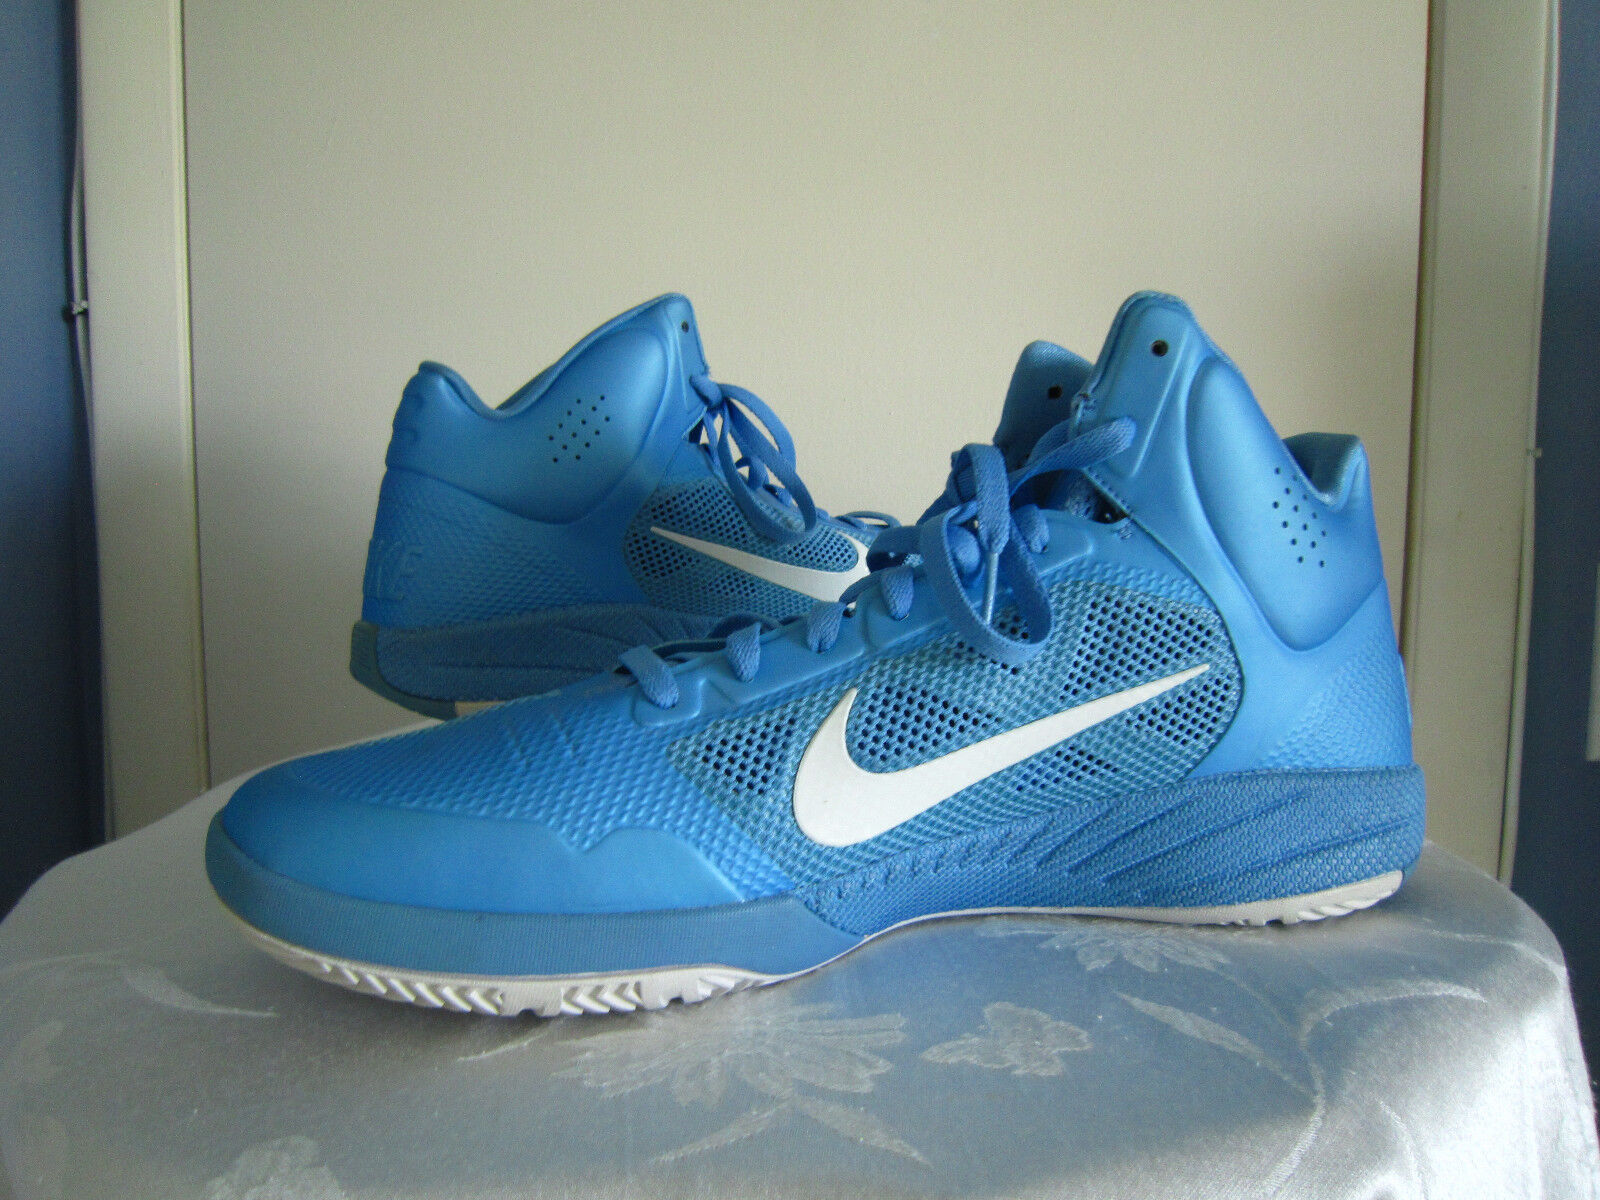 NIKE Zoom Hyperfuse bluee Basketball Sneakers shoes Mens 407623-402  Sz 17.5